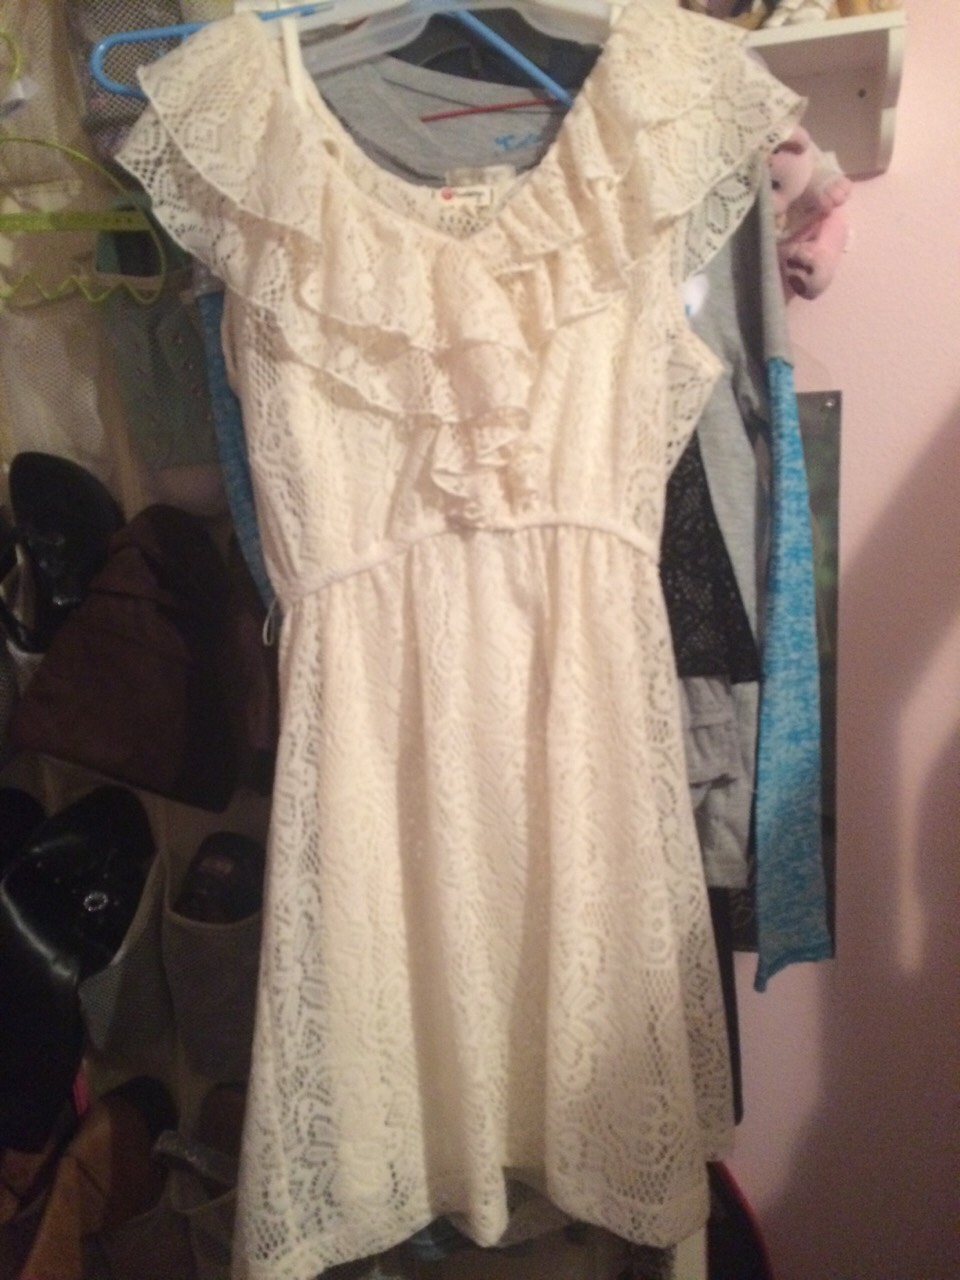 The theme is all white so should i wear this dress or...